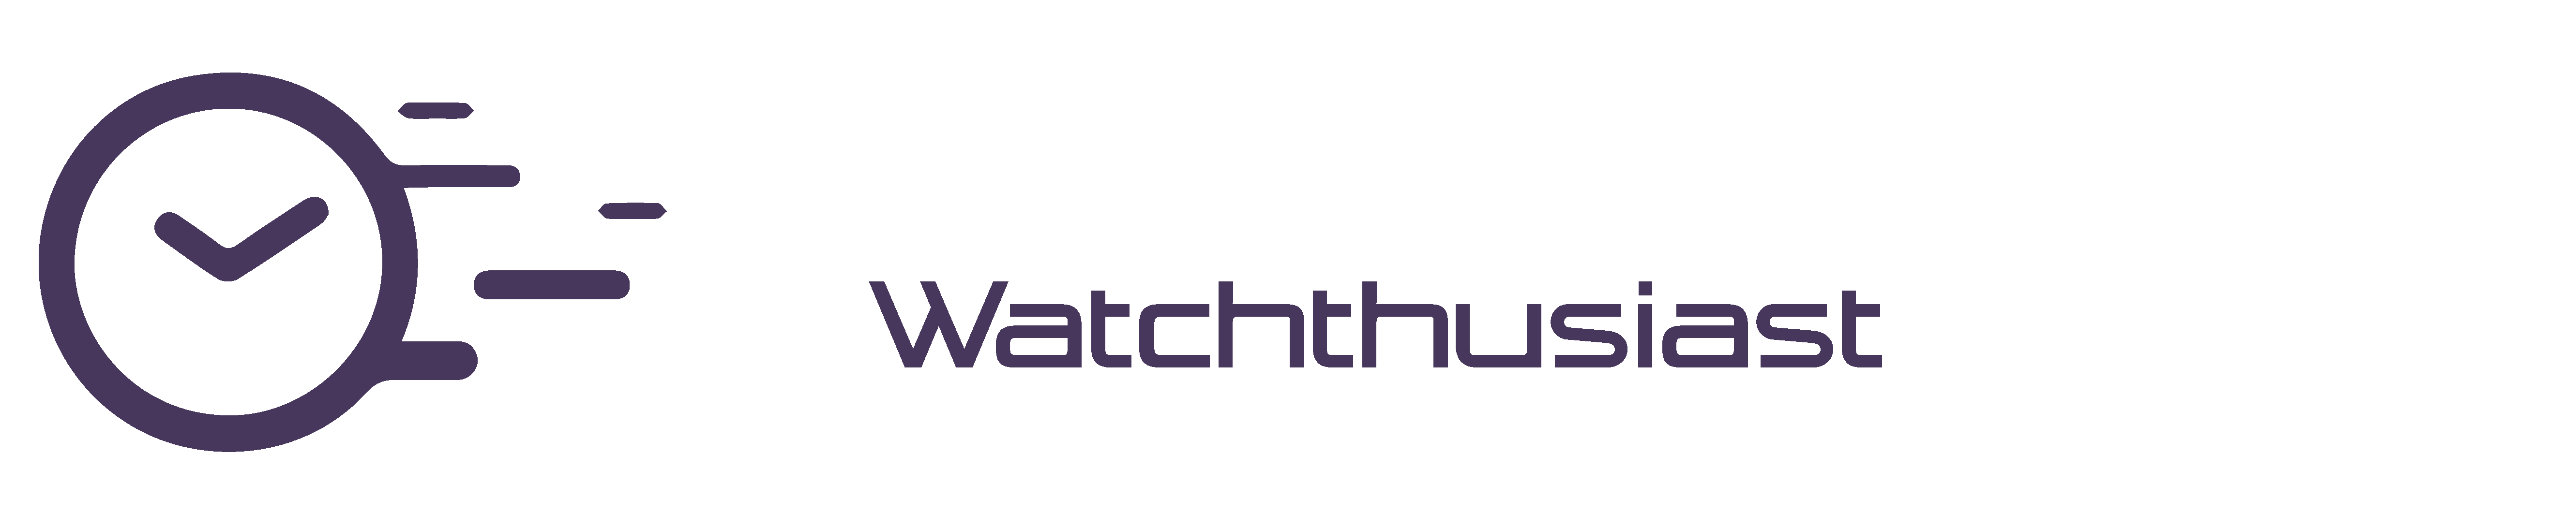 watchthusiast_vertical TG